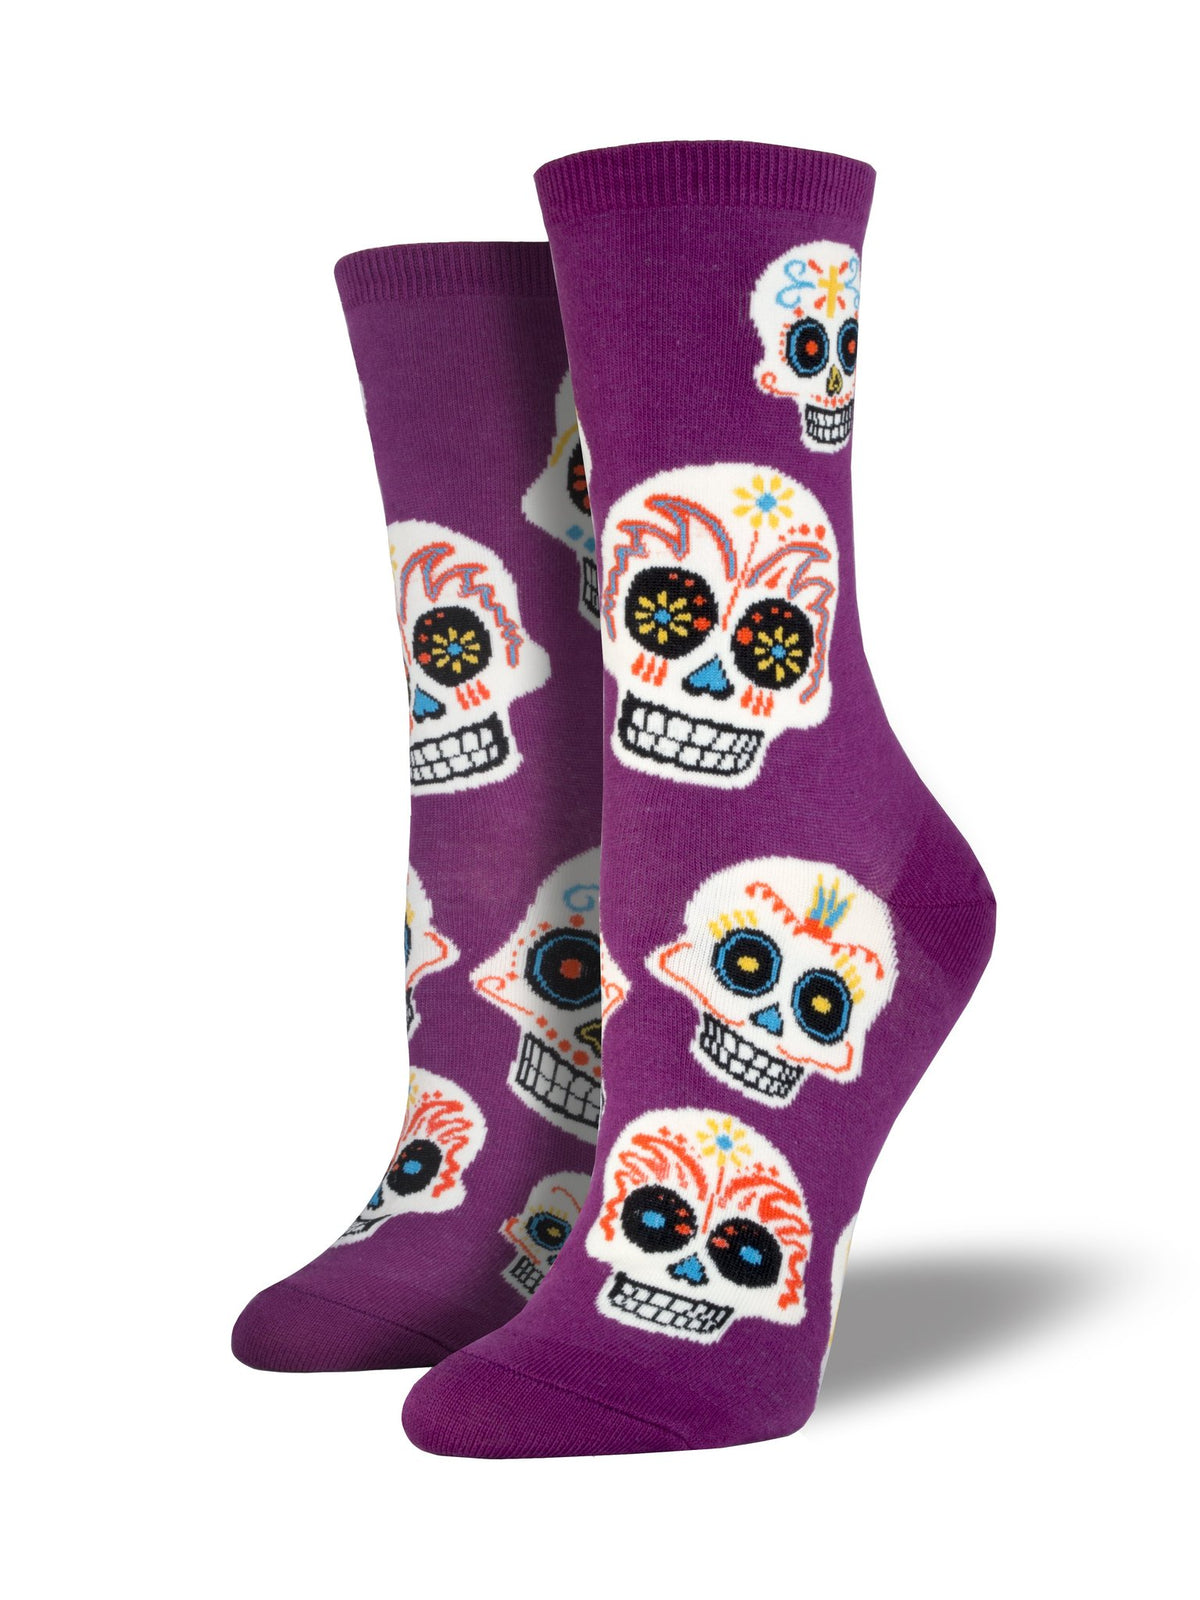 Women's Sugar Skull Socks - Royal Purple